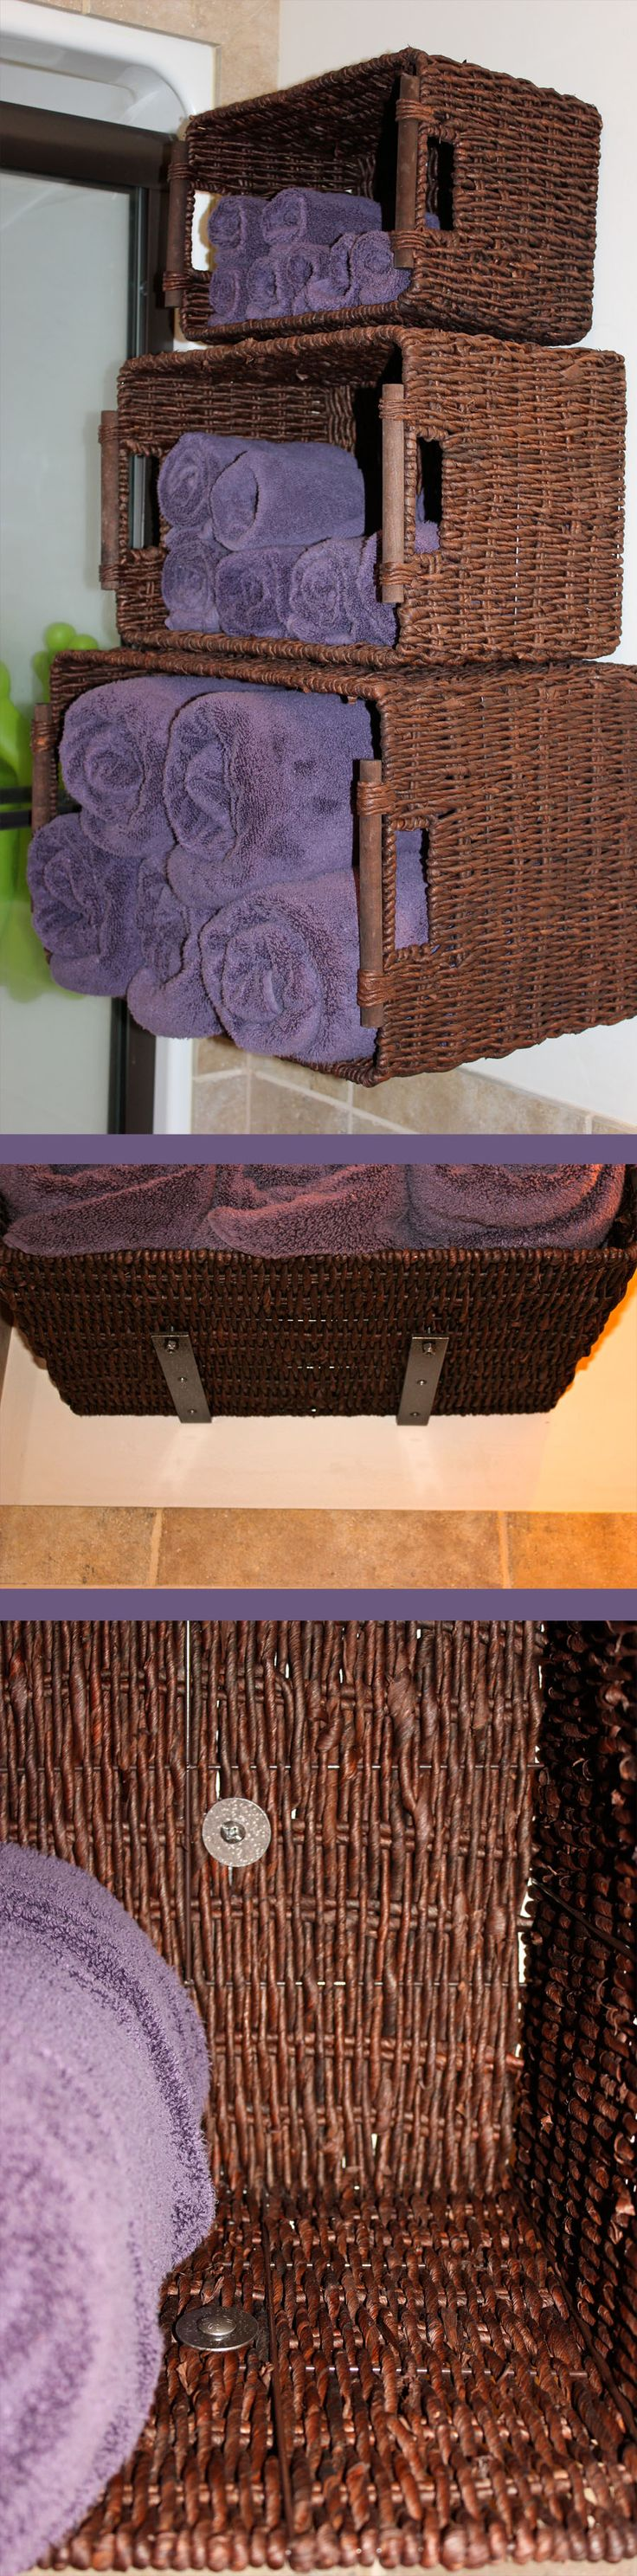 Basket shelving for bathroom-under $50 project. I got the baskets half price at Hobby Lobby. I spray painted the brackets, screws, washers and nuts oil rubbed bronze. To attach the baskets to the wall securely, use wall anchors to mount the brackets to the wall first. Then wiggle the screw with the washer through the wicker and drill it into the other hole in the bracket. Use a nut with a washer to secure the bottom of the basket to the bracket. Washers are a must to prevent wicker damage.